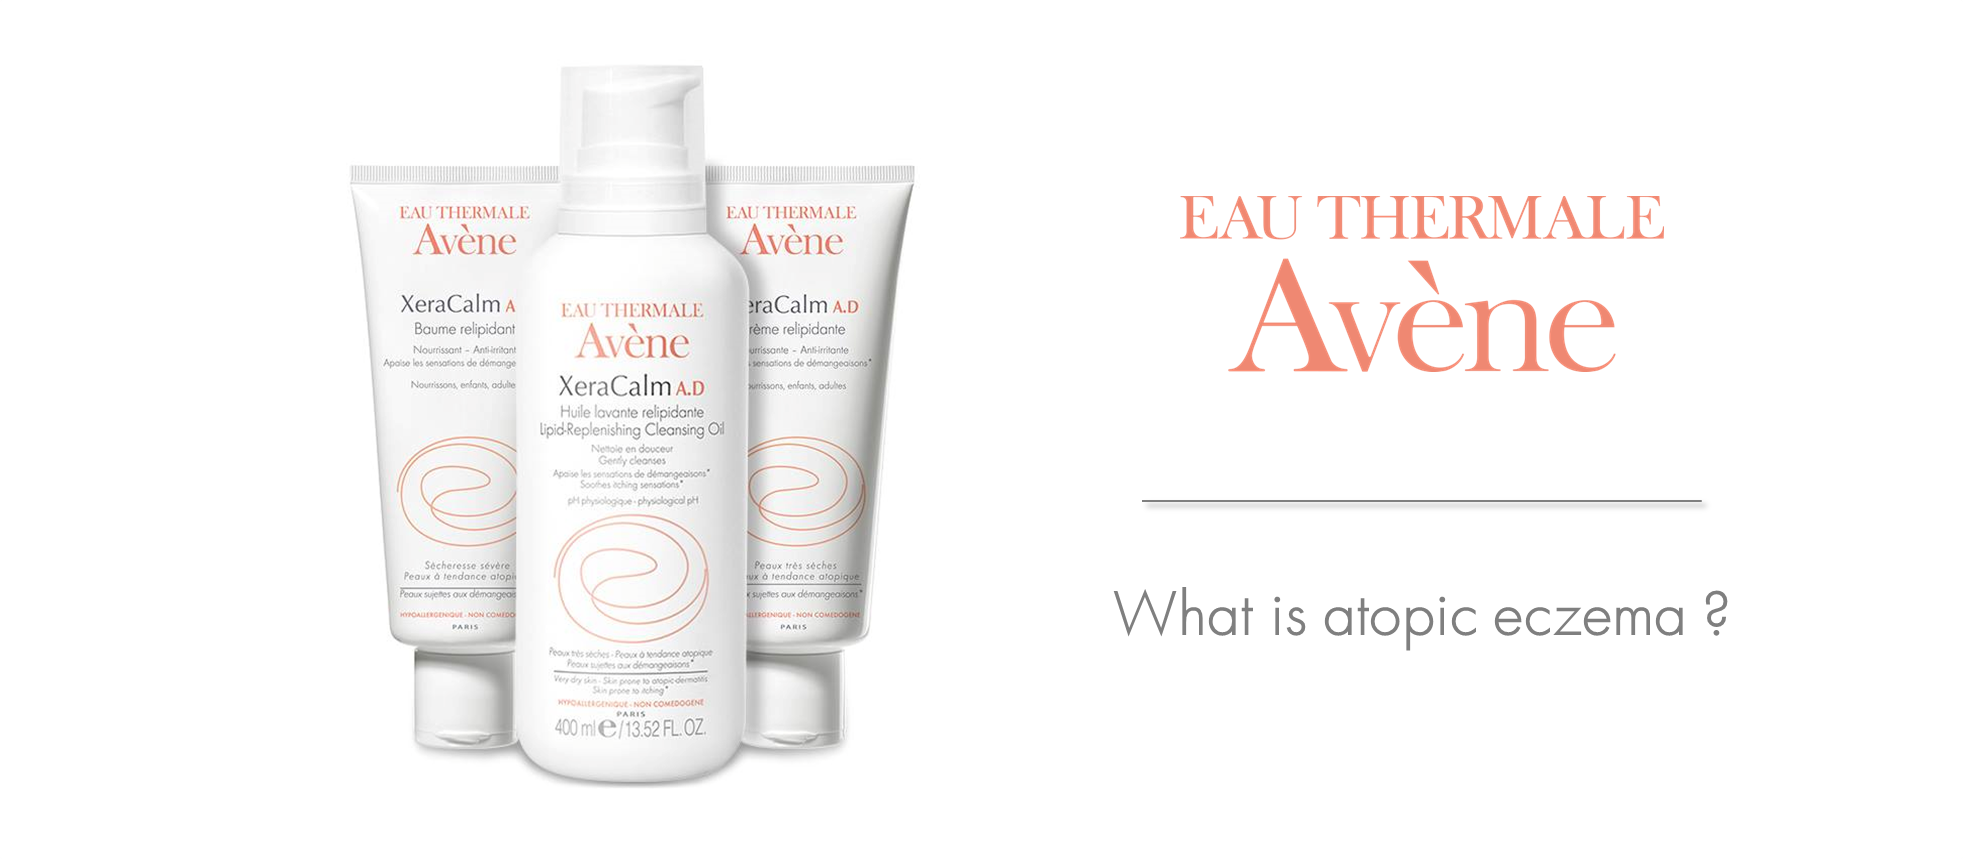 What is atopic eczema?